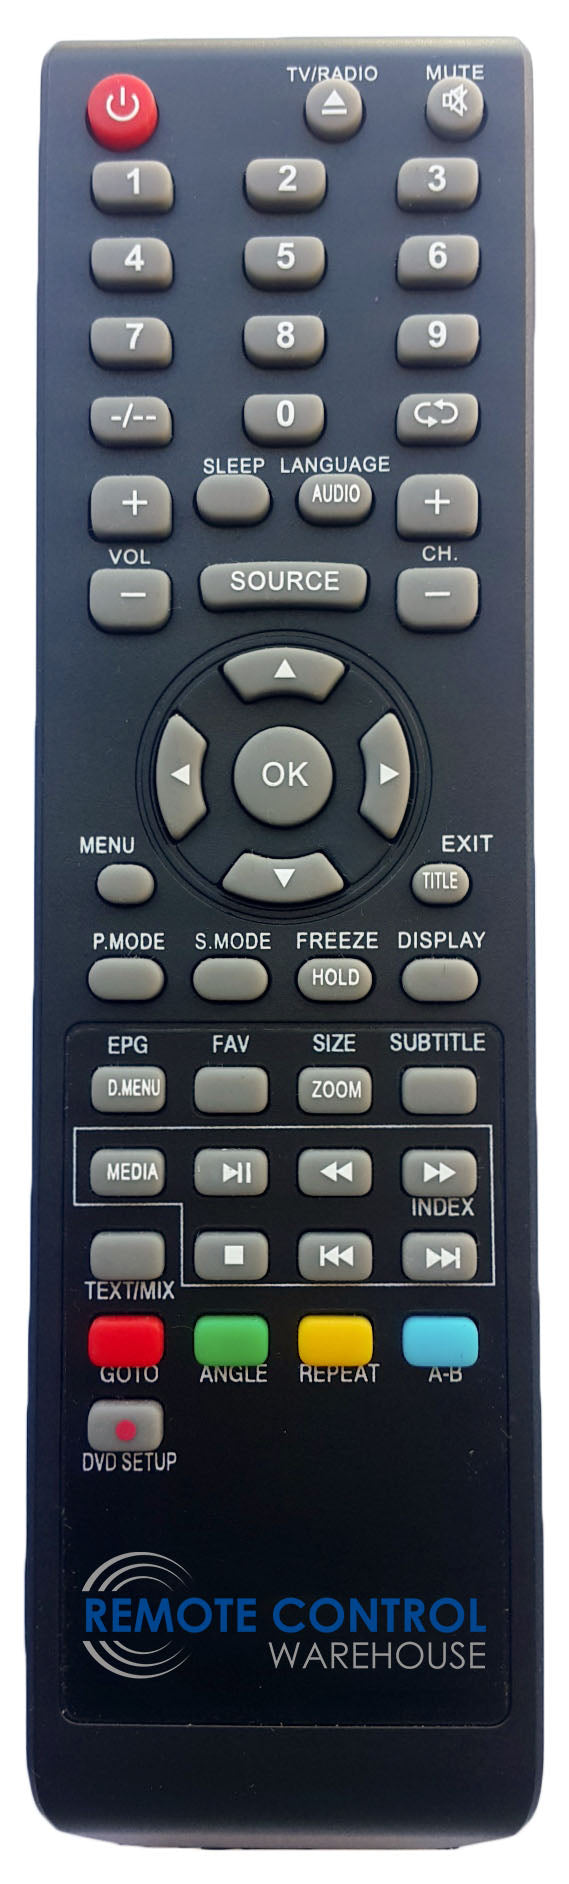 REPLACEMENT VIVID REMOTE CONTROL - AT-40HD1 AT40HD1 LCD TV - Remote Control Warehouse